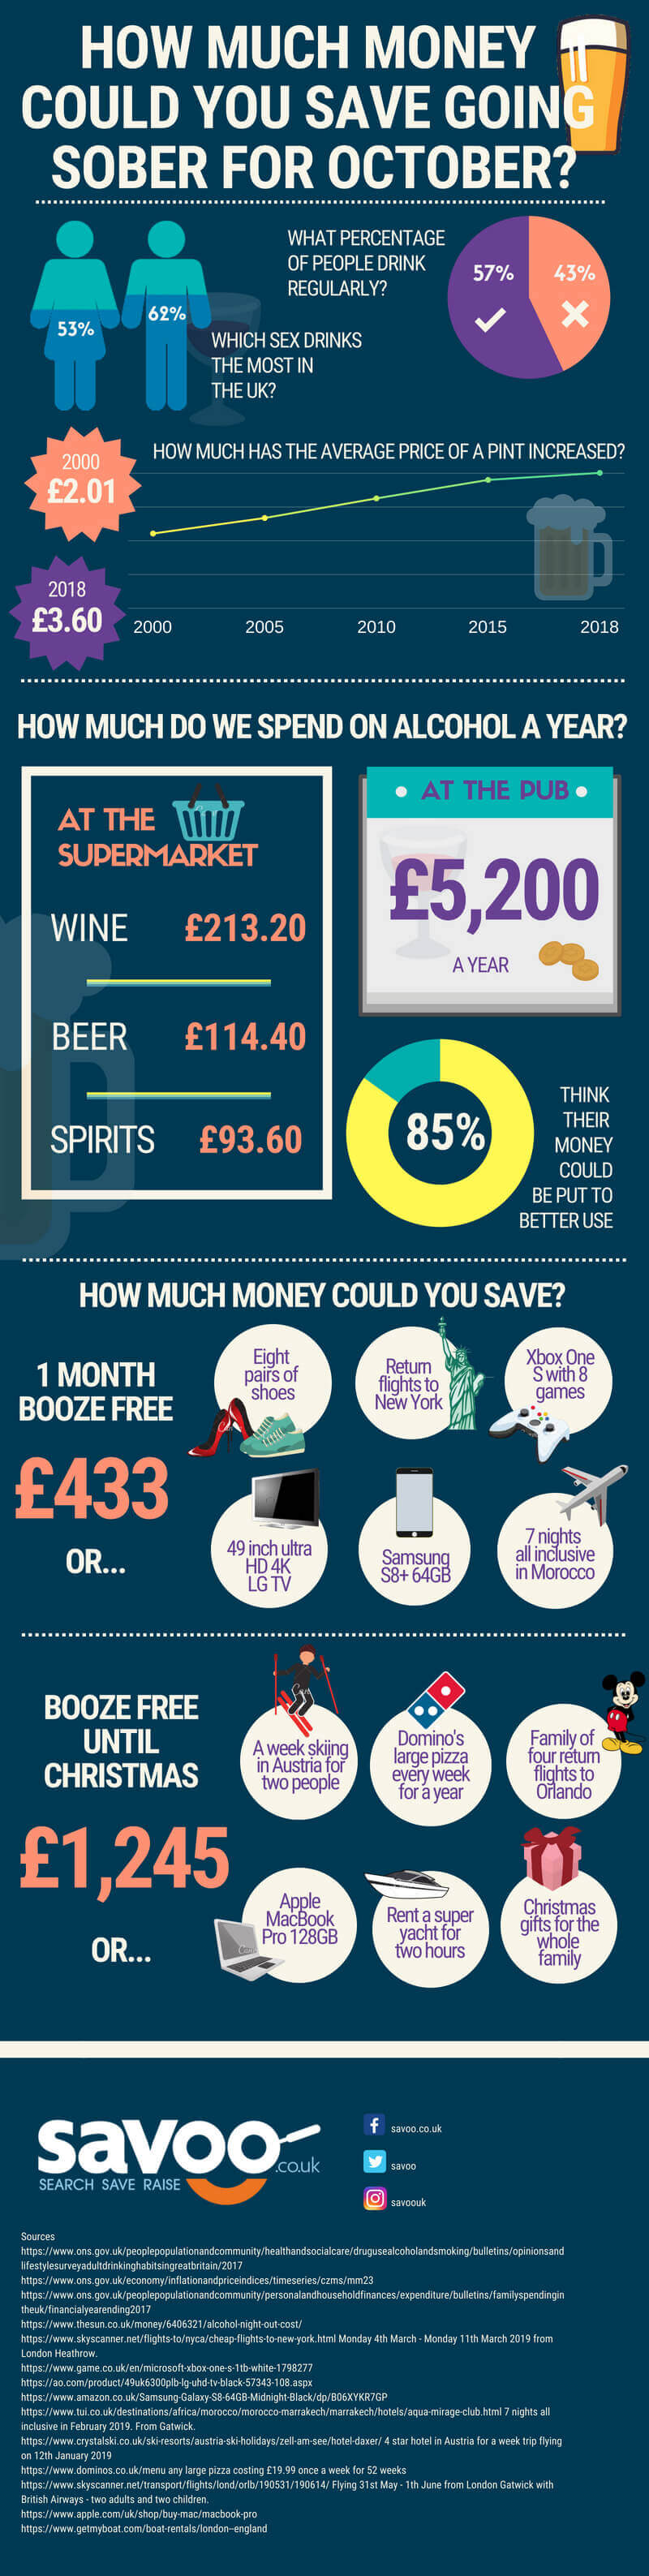 How much you can save going Sober for October infographic